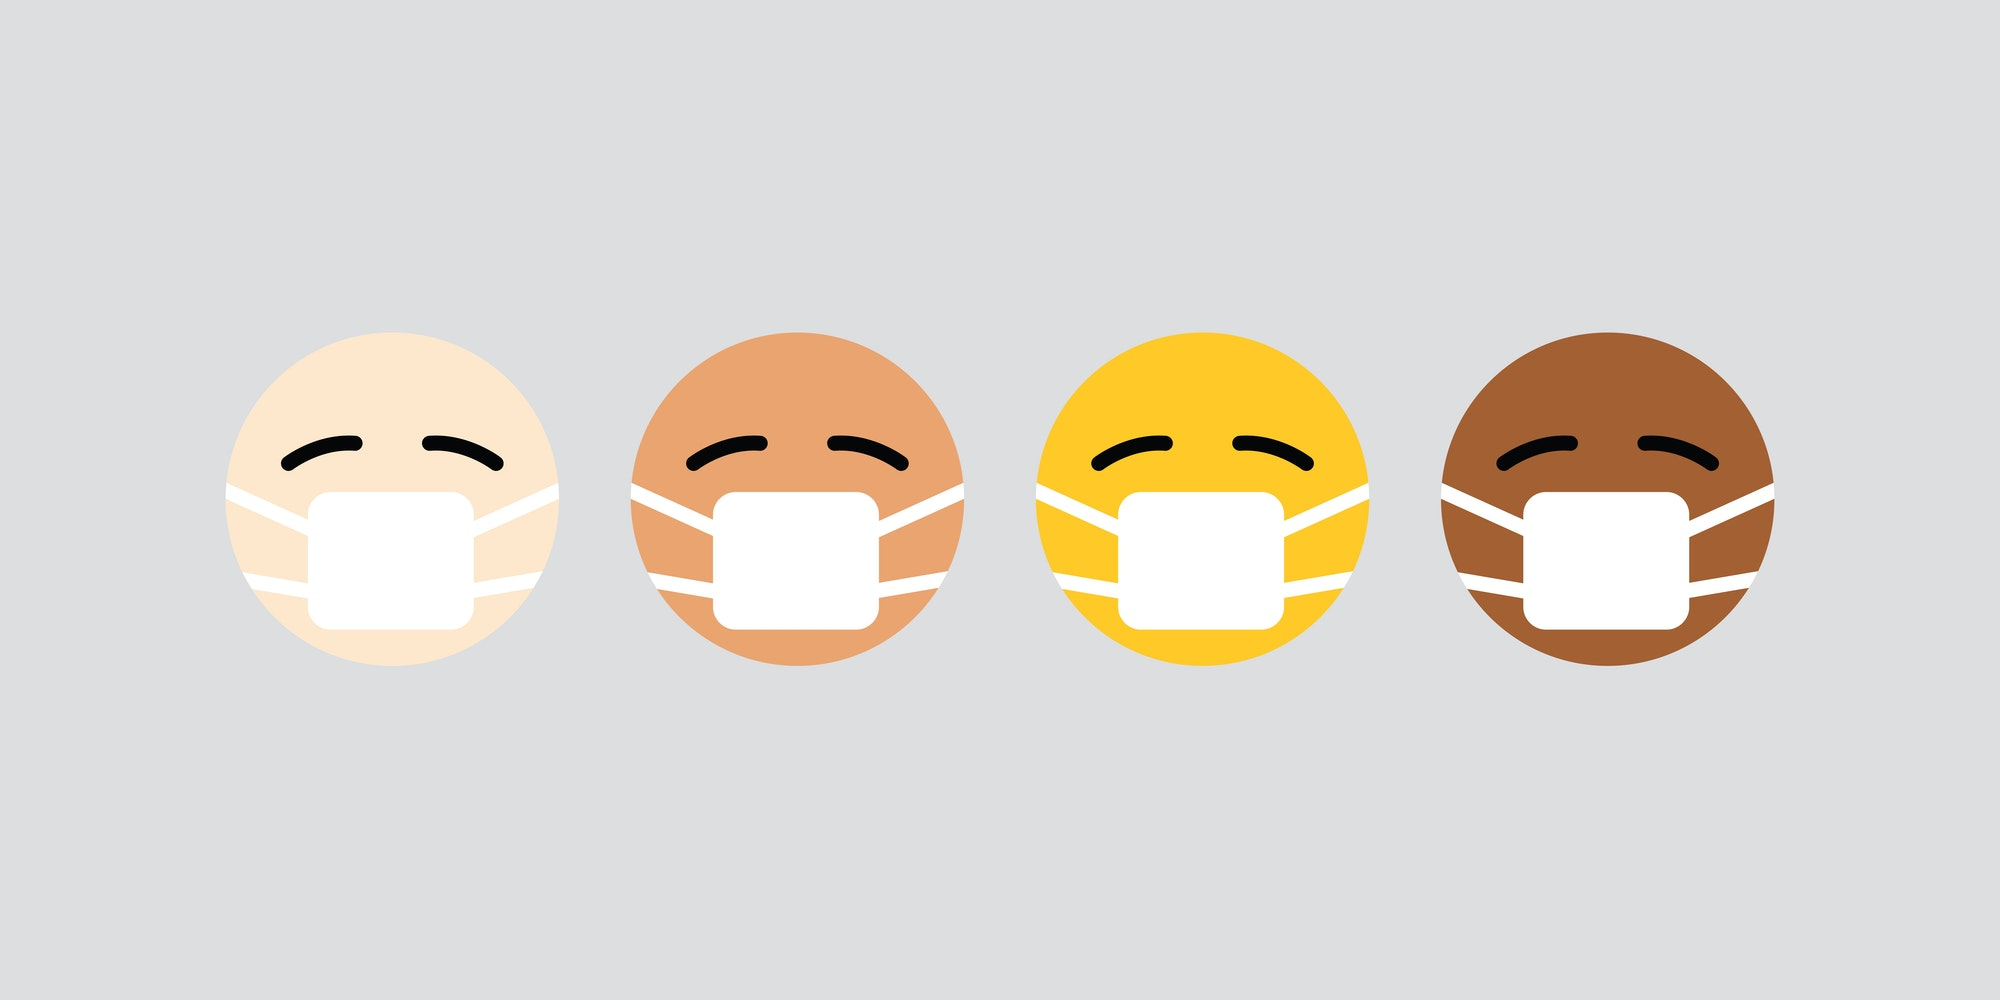 Cover Image for Emoji ethics